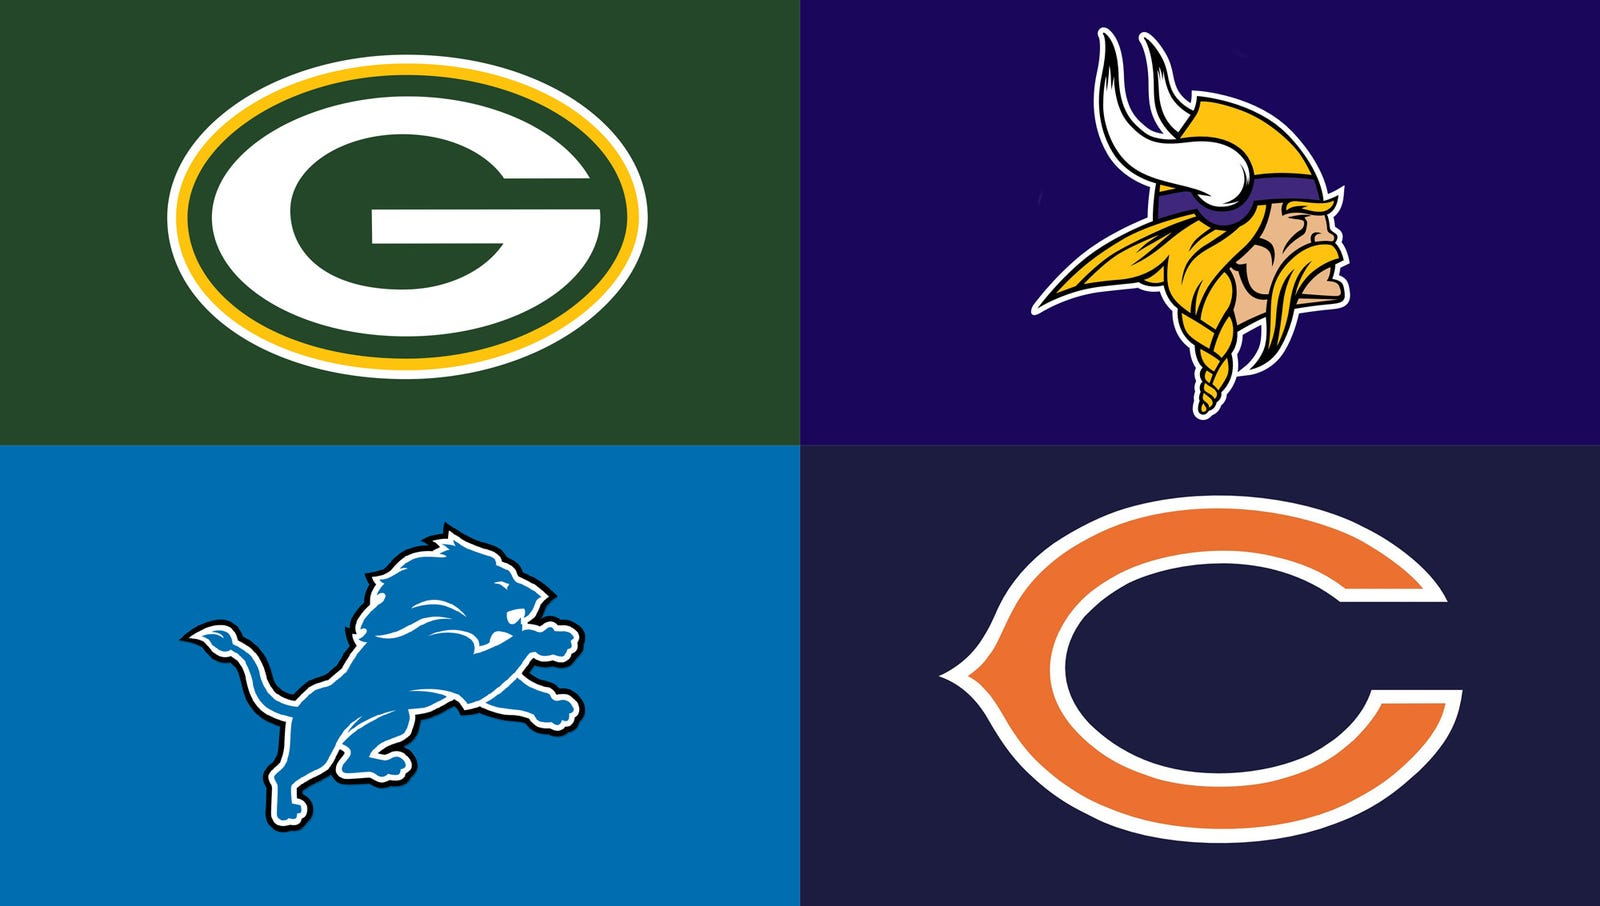 With the 2014 NFL season kicking off this week, Onion Sports has in-depth analysis on each team in the NFC North.